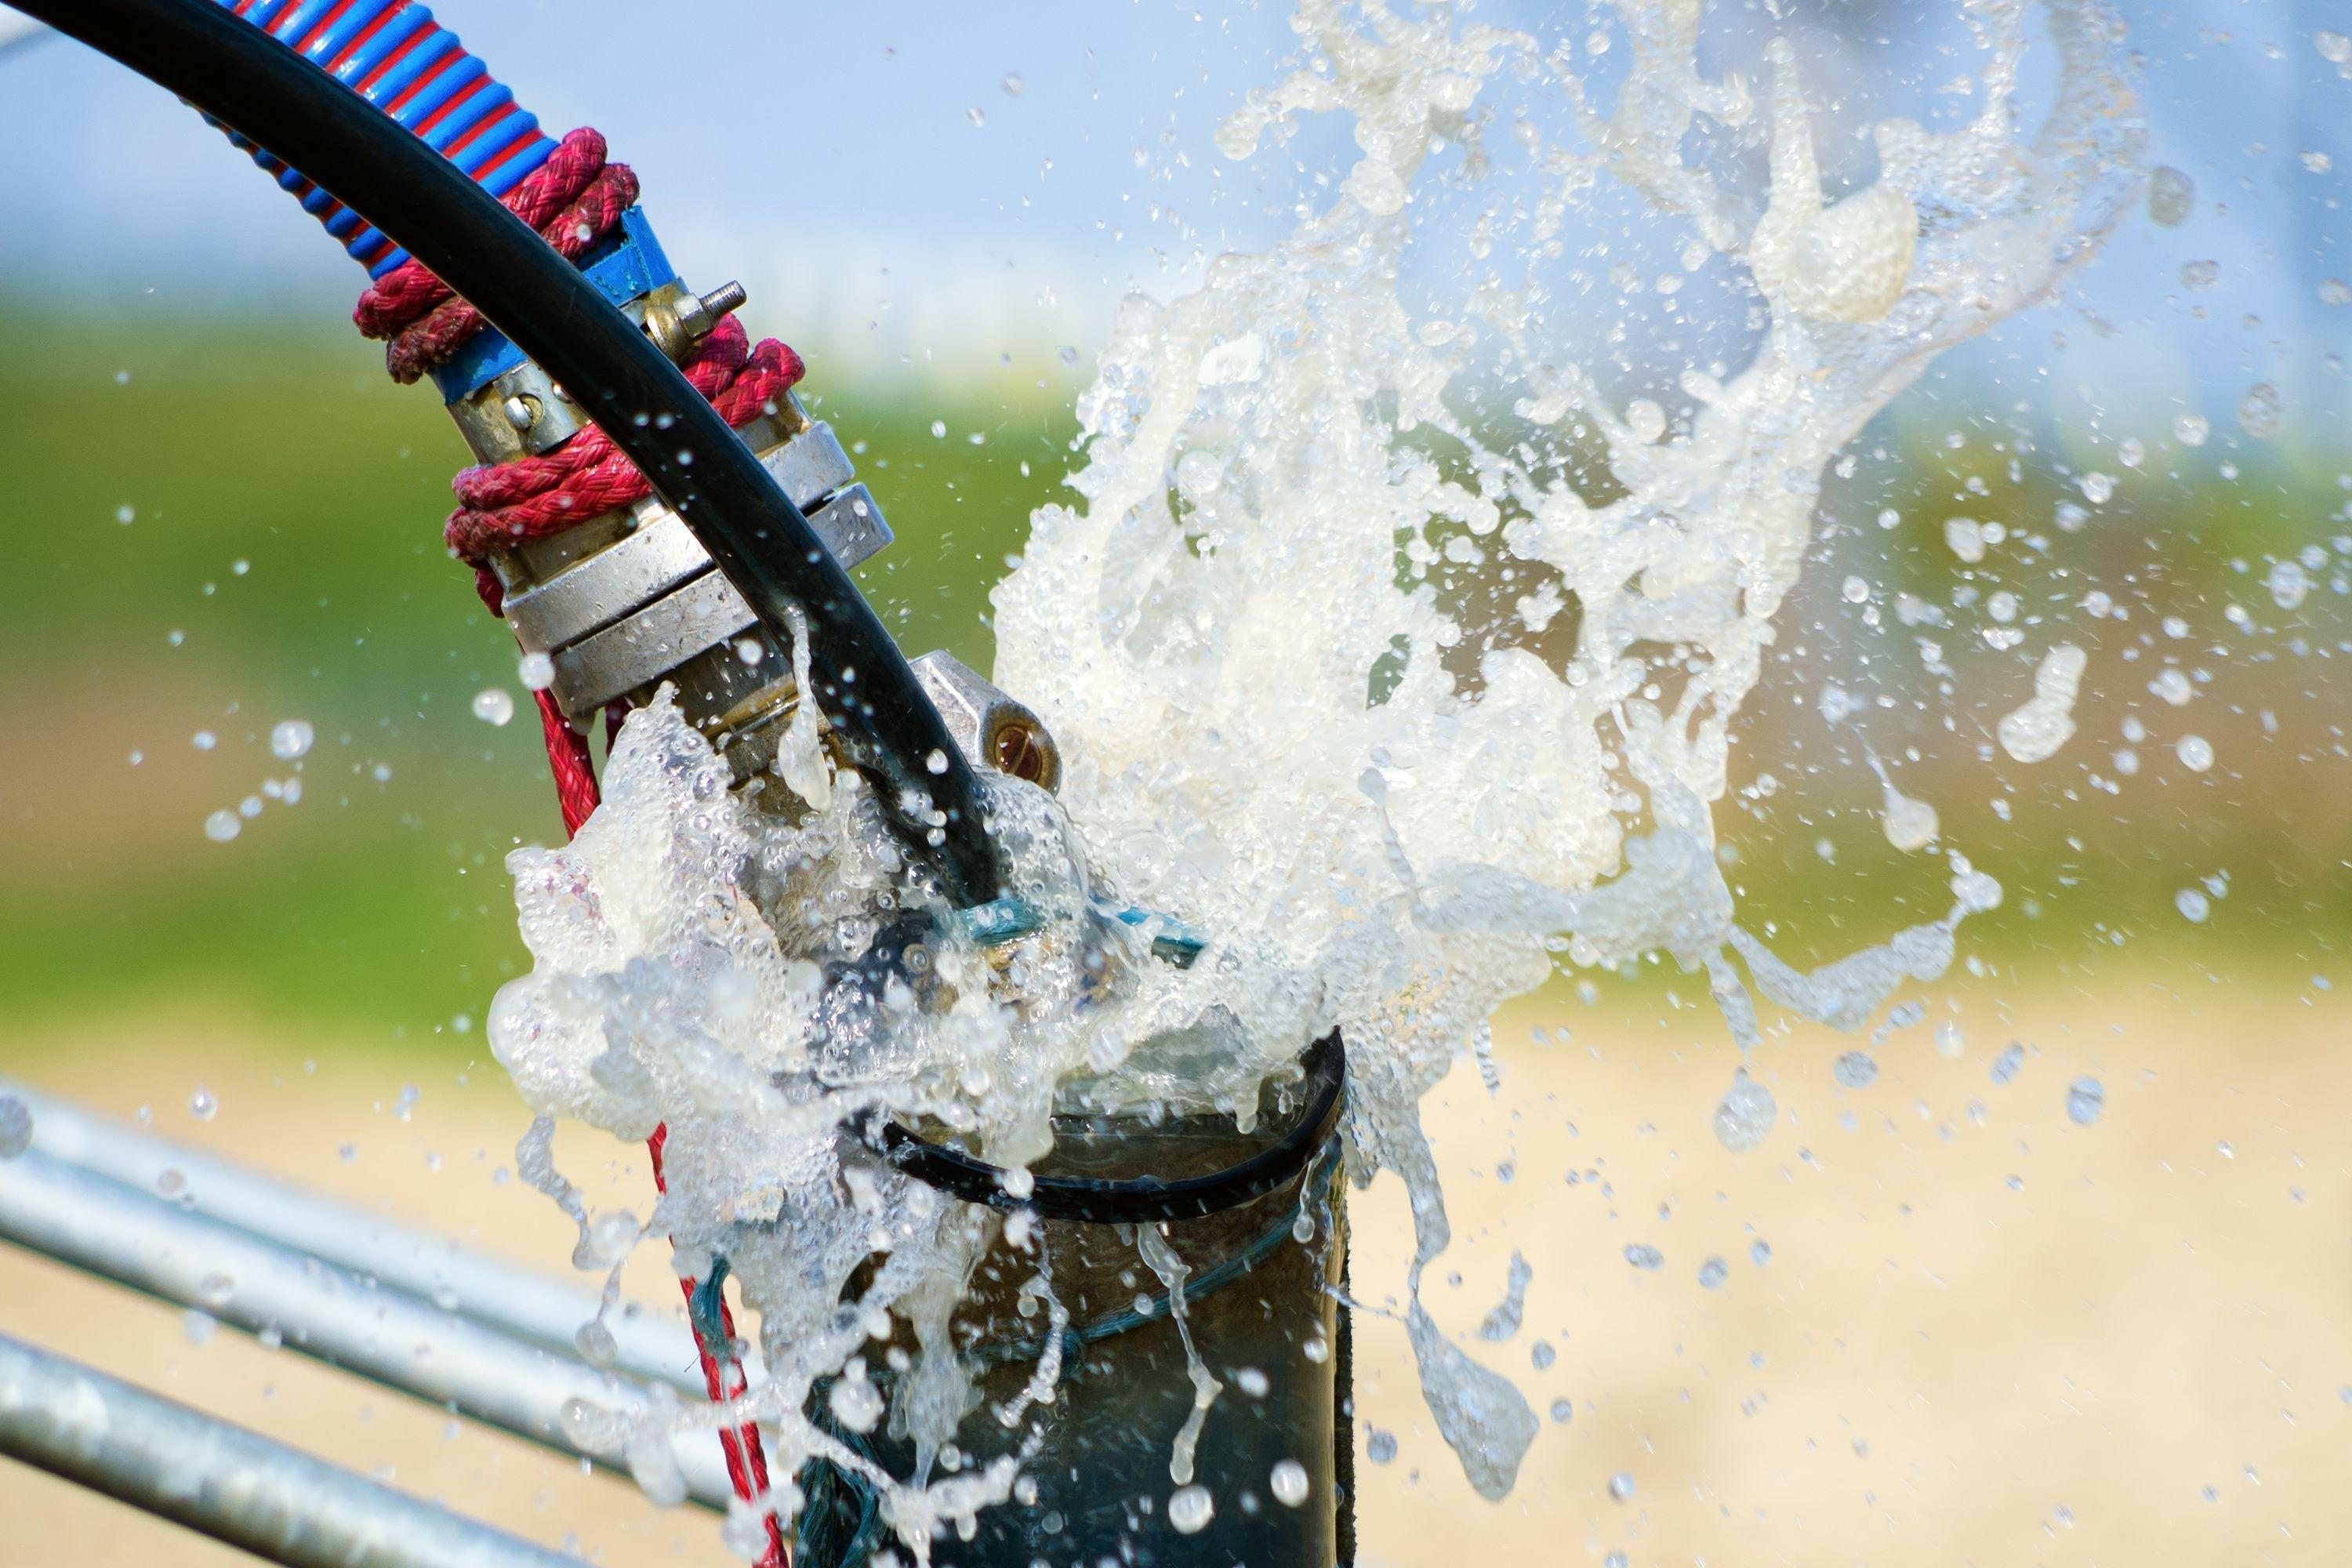 How To Replace Your Own Well Pump